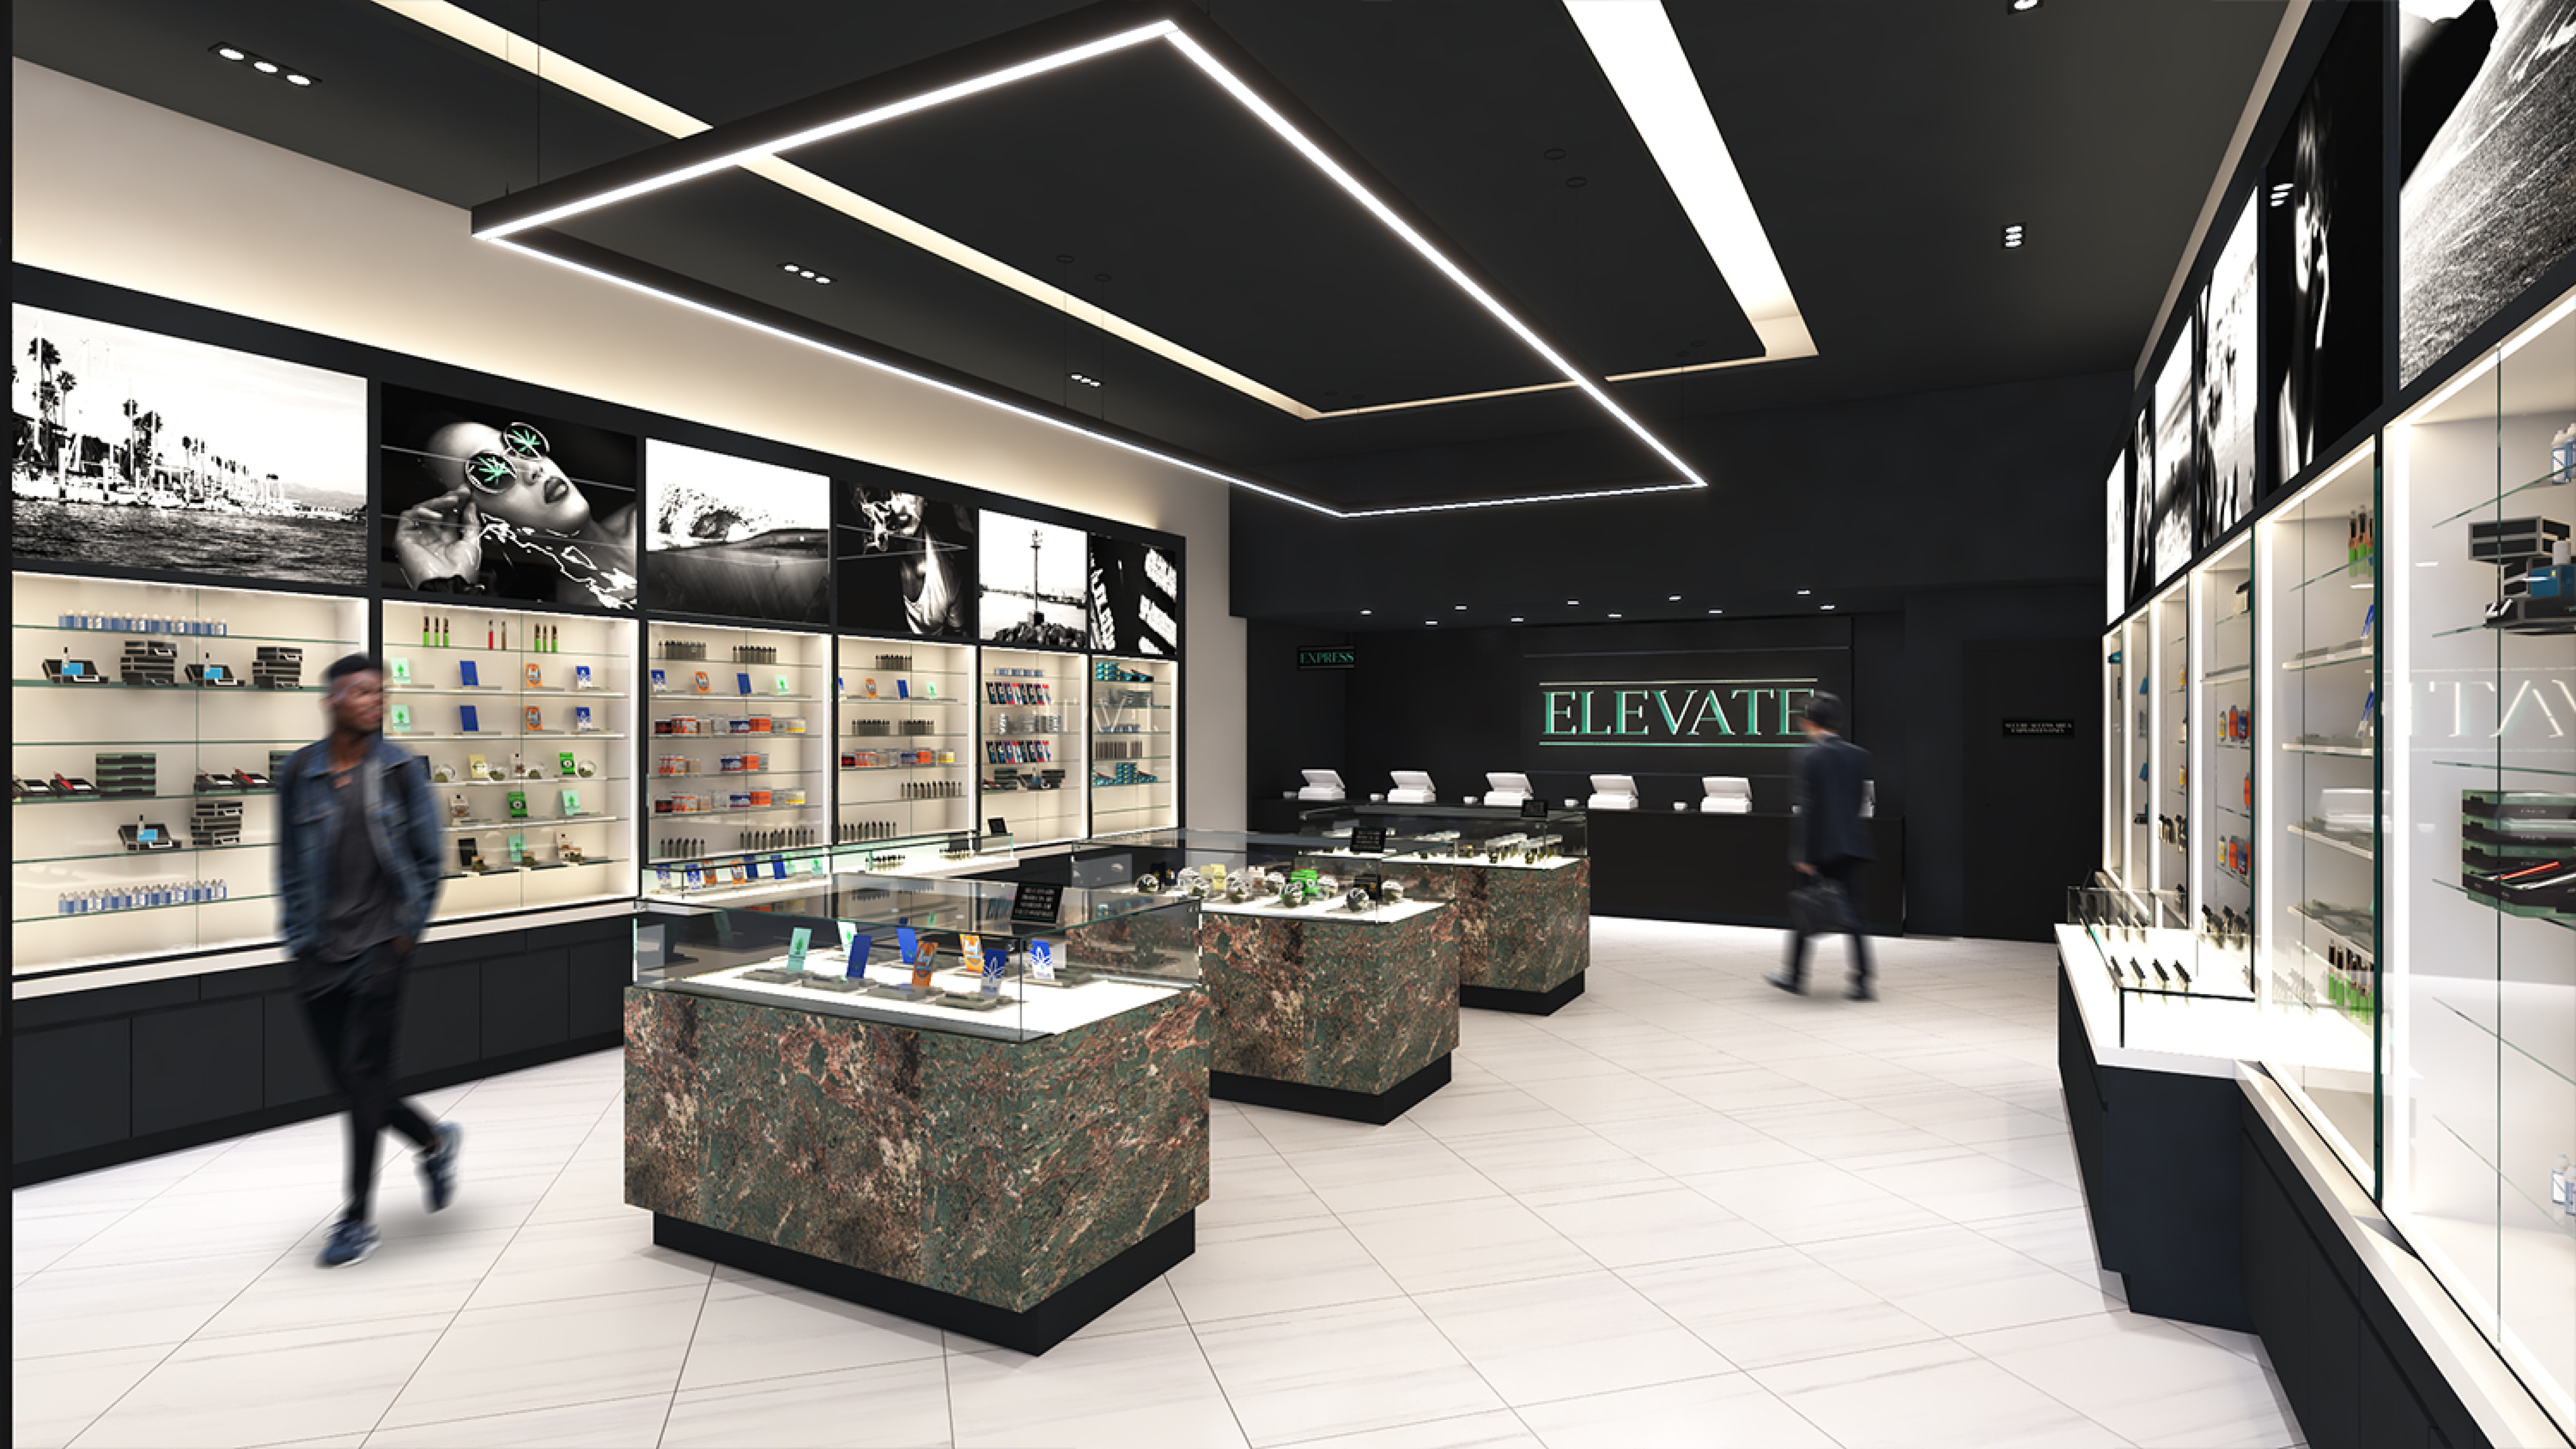 Elevate Dispensary in Oxnard CA. Retail Design by High Road Studio, coming soon.